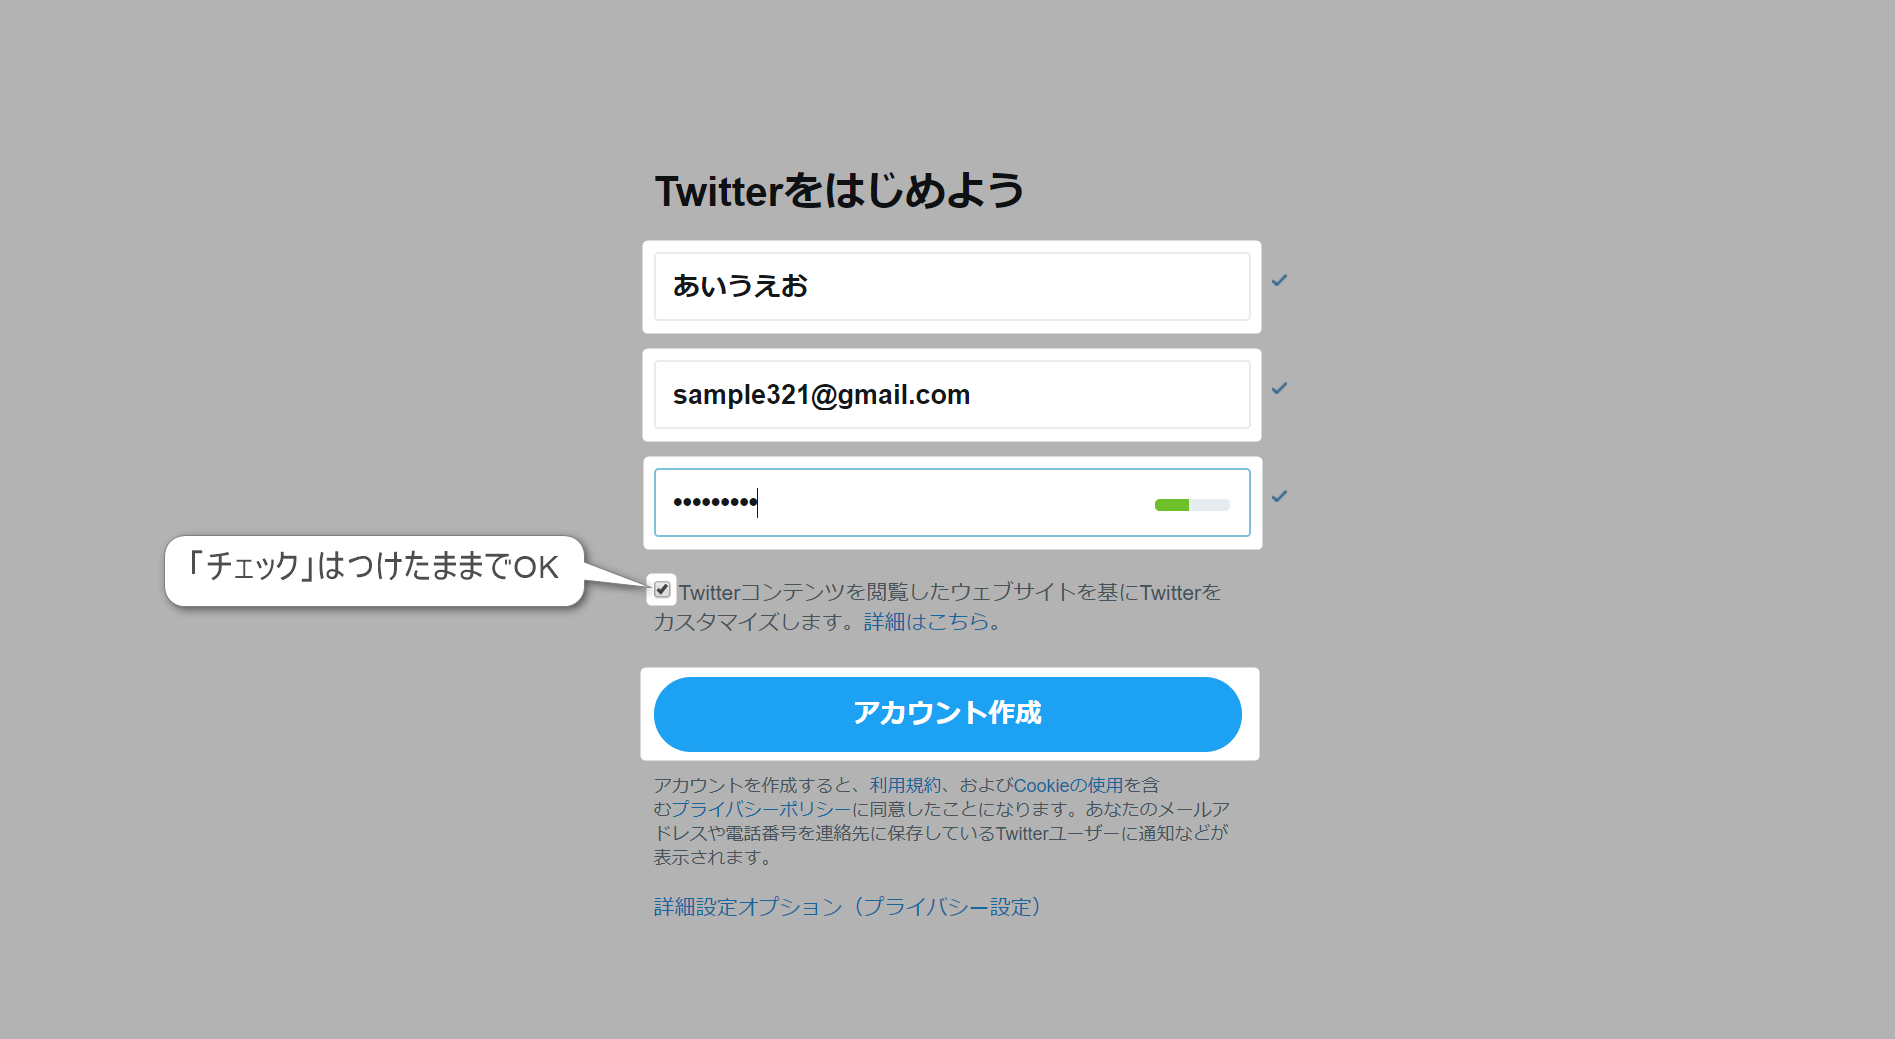 Twitterを始めよう入力完了